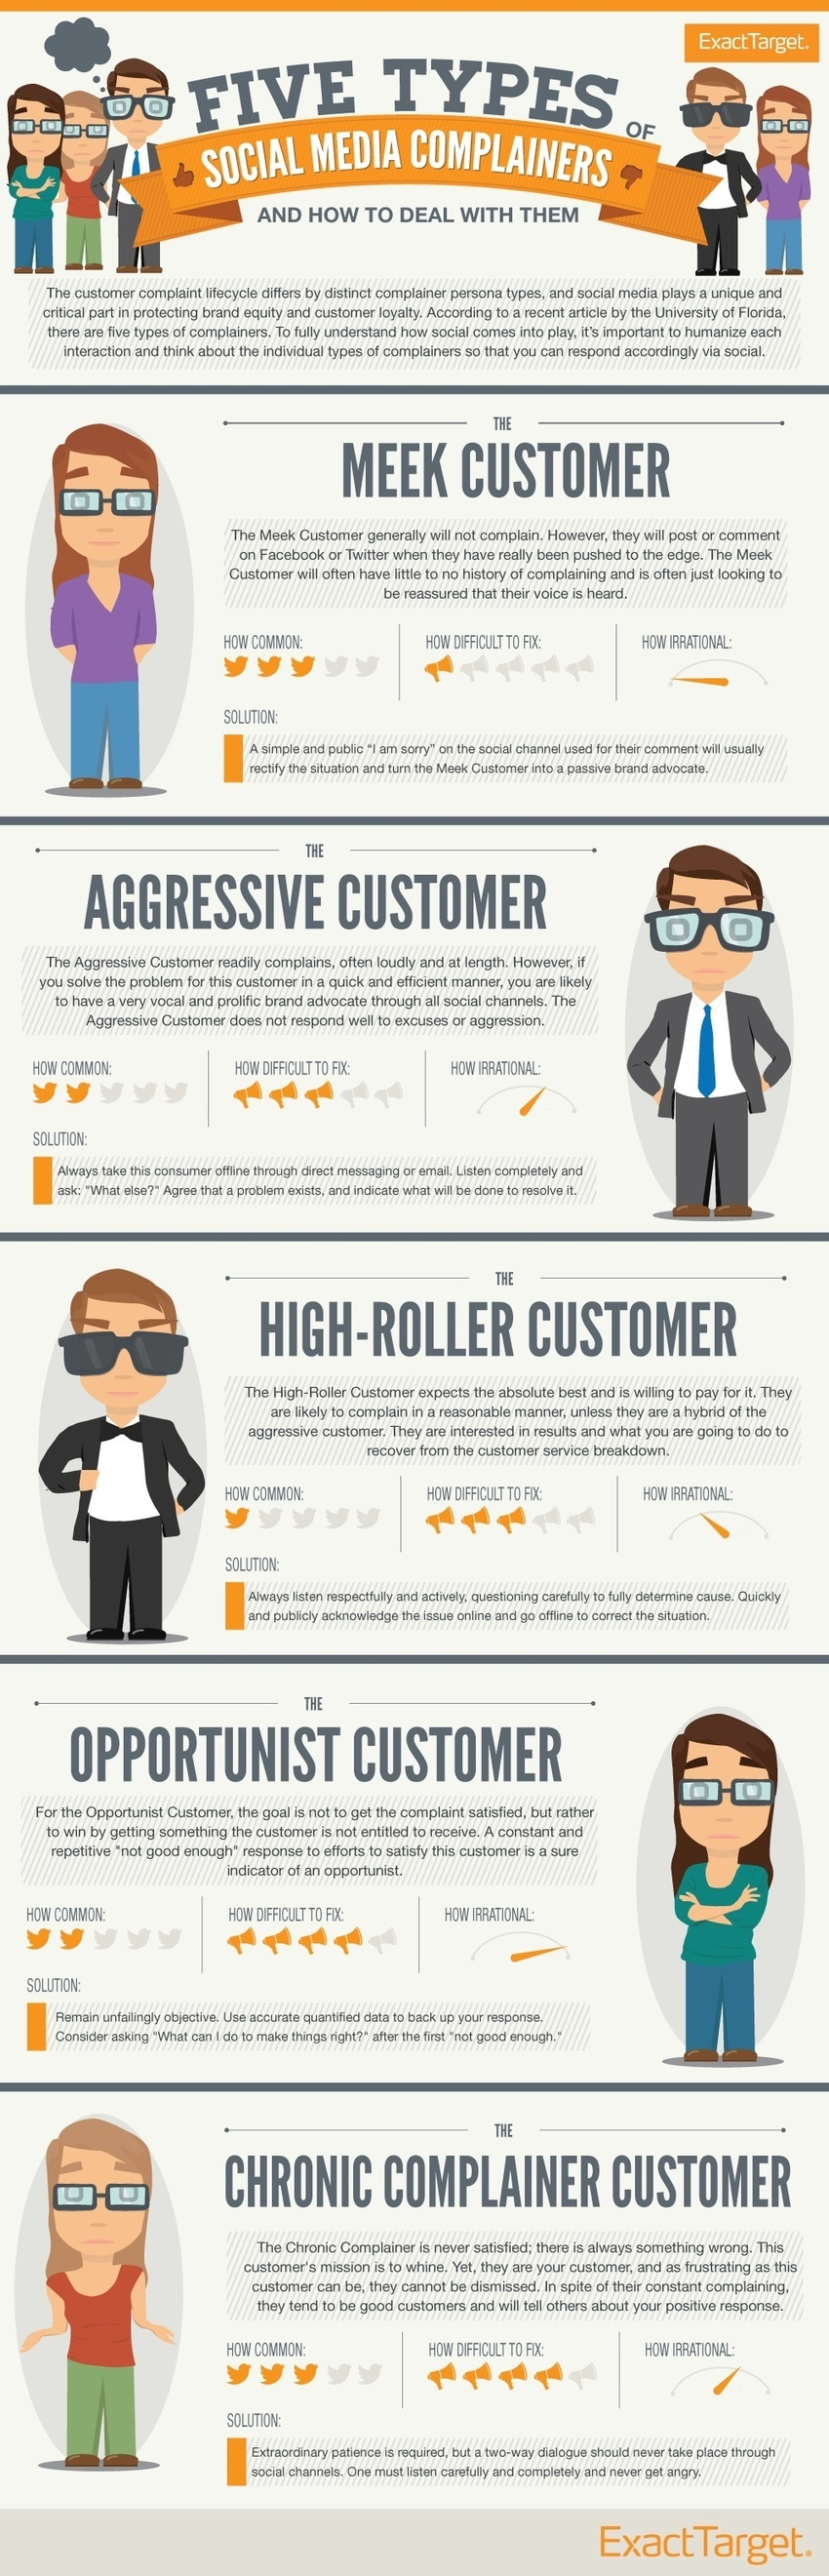 The 5 Types Of Social Media Complainers (And How To Deal With Them) [INFOGRAPHIC] | Beyond Marketing